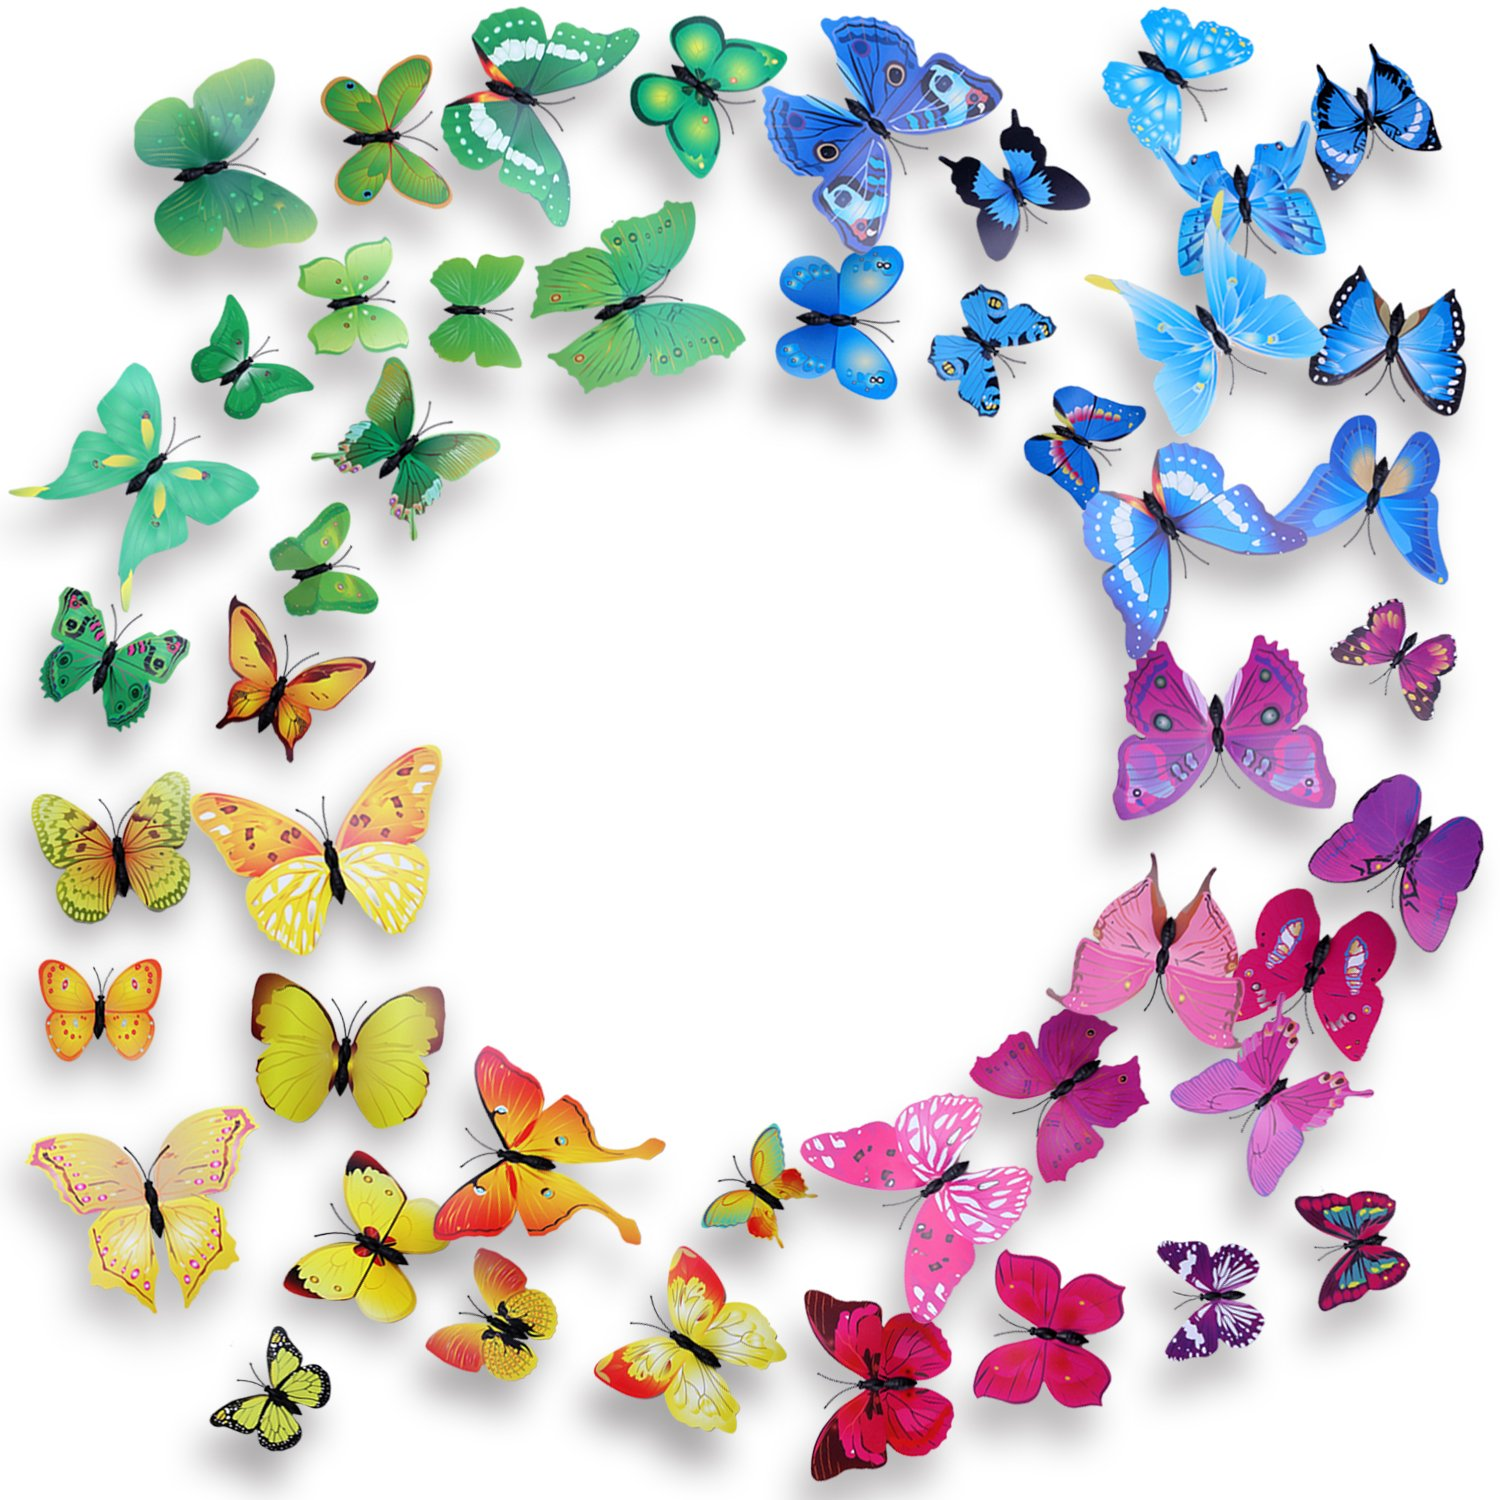 48 PCS 3D Butterfly Wall Stickers Butterfly Magnets with Dot Glue for Home & Room Decoration (Blue & Purple & Green & Yellow)